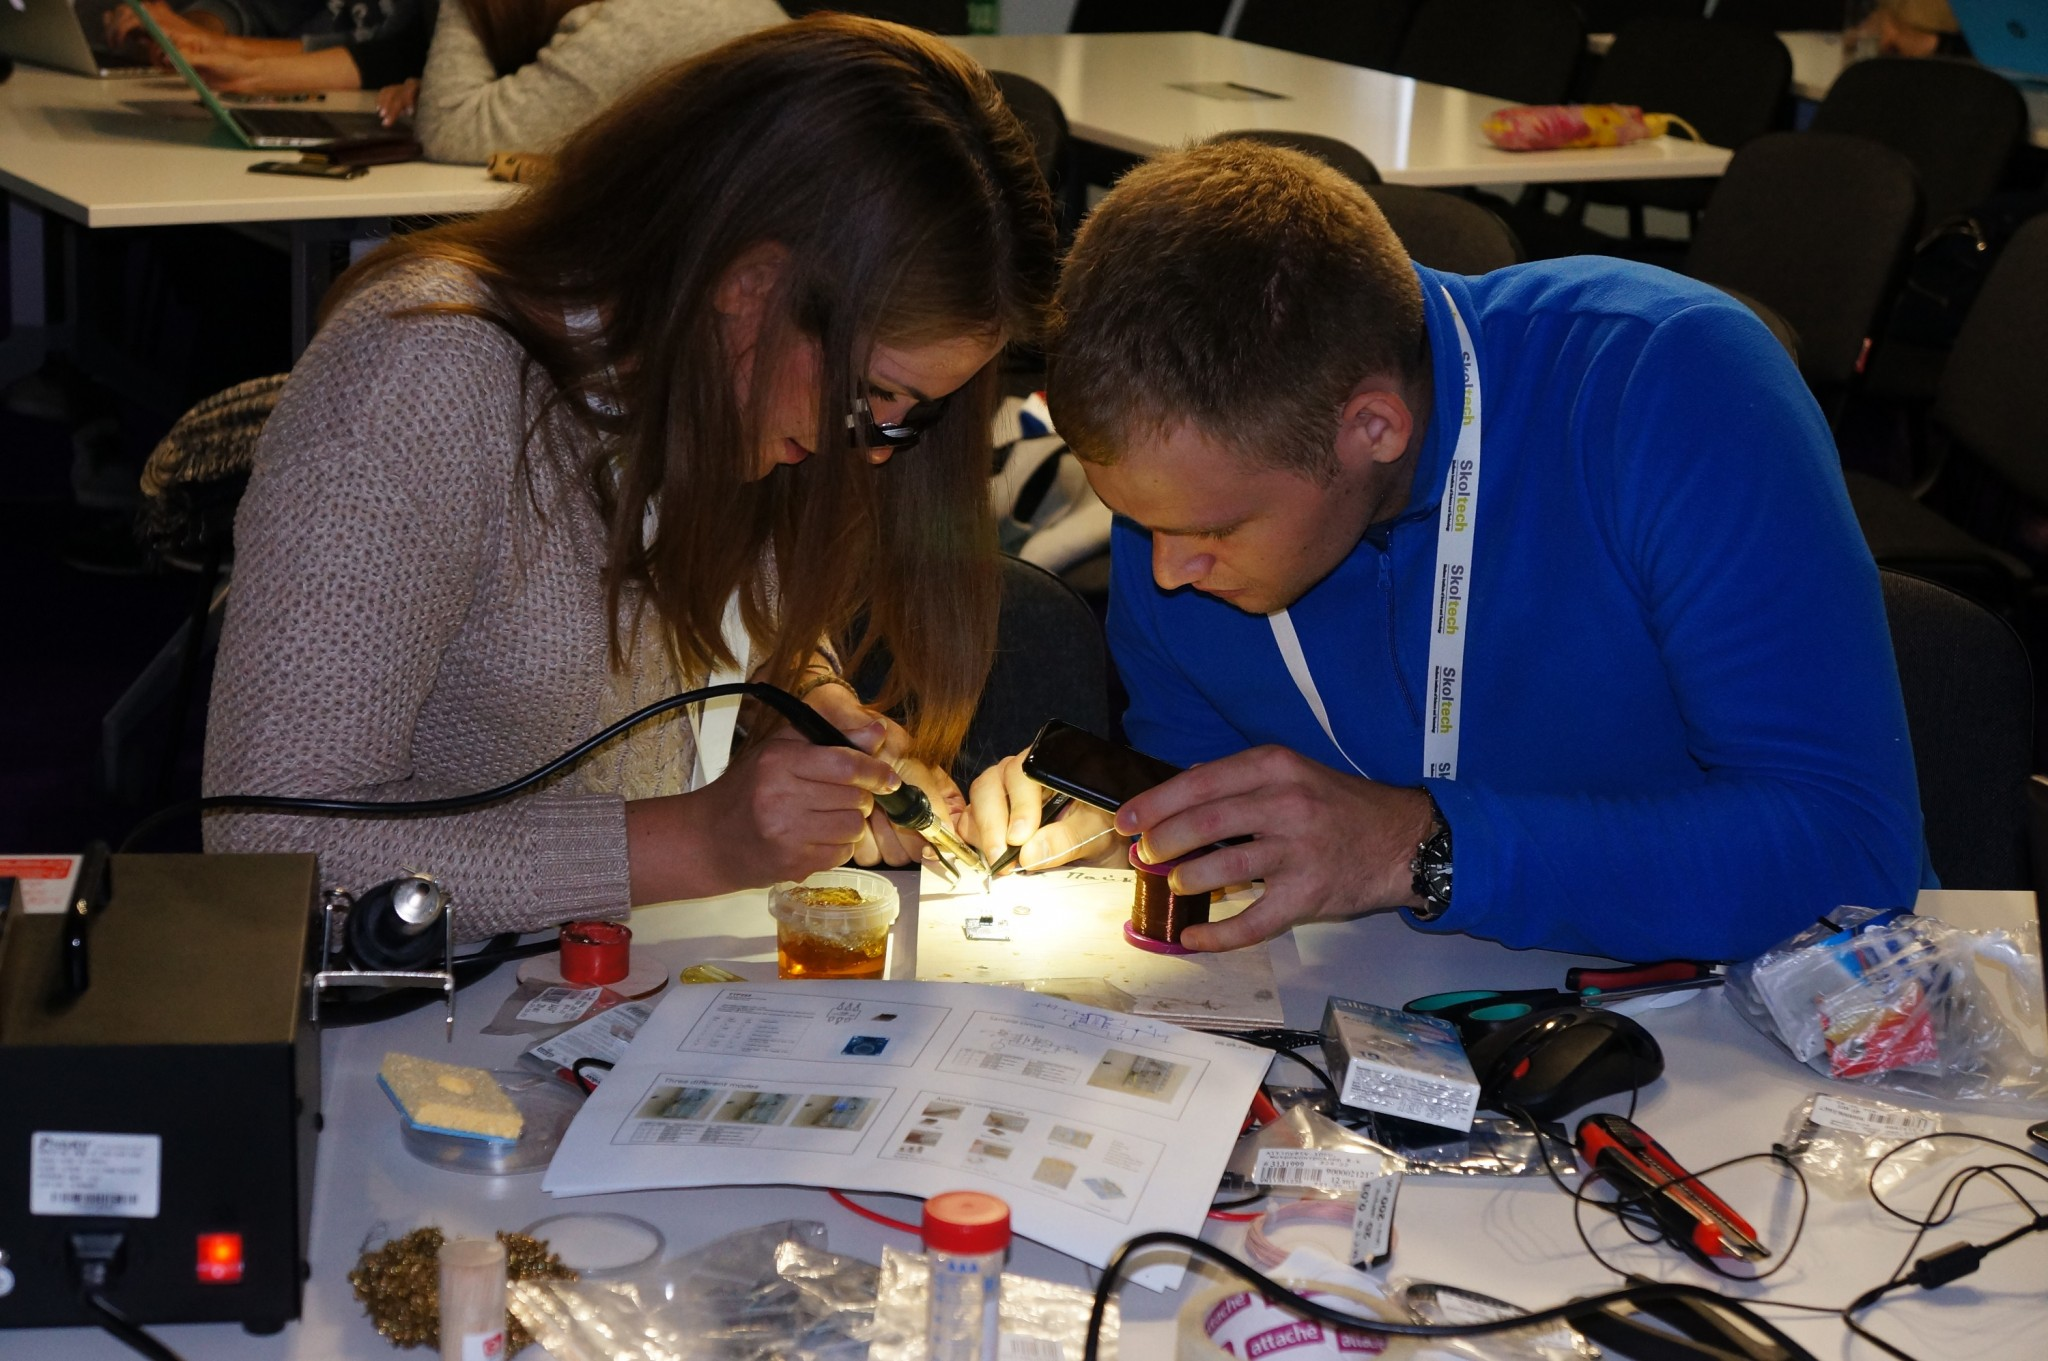 Students work together on a project during Skoltech's annual Innovation Workshop. Photo: Skoltech.